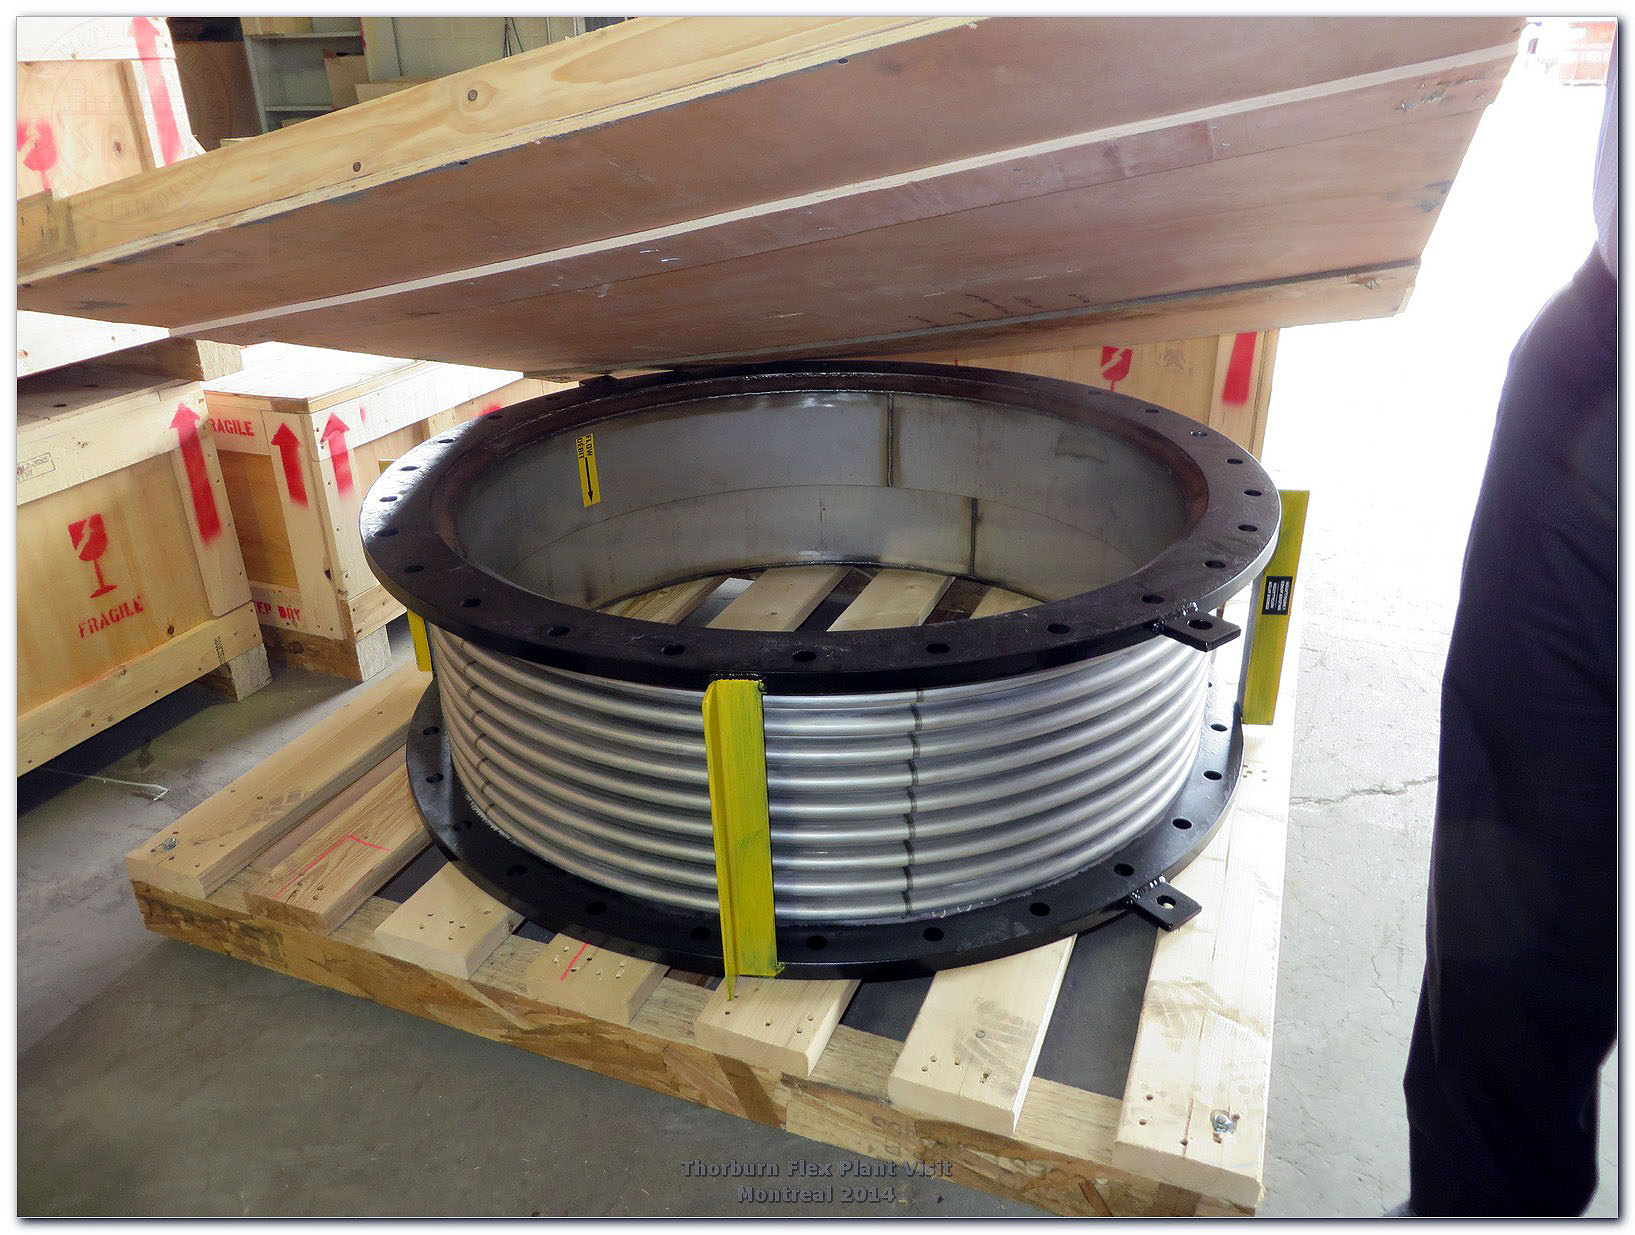 Round metallic bellows with forged flanges with integral tie rods on the outside flange diameter to avoid excessive welding and heat distortion of the flange